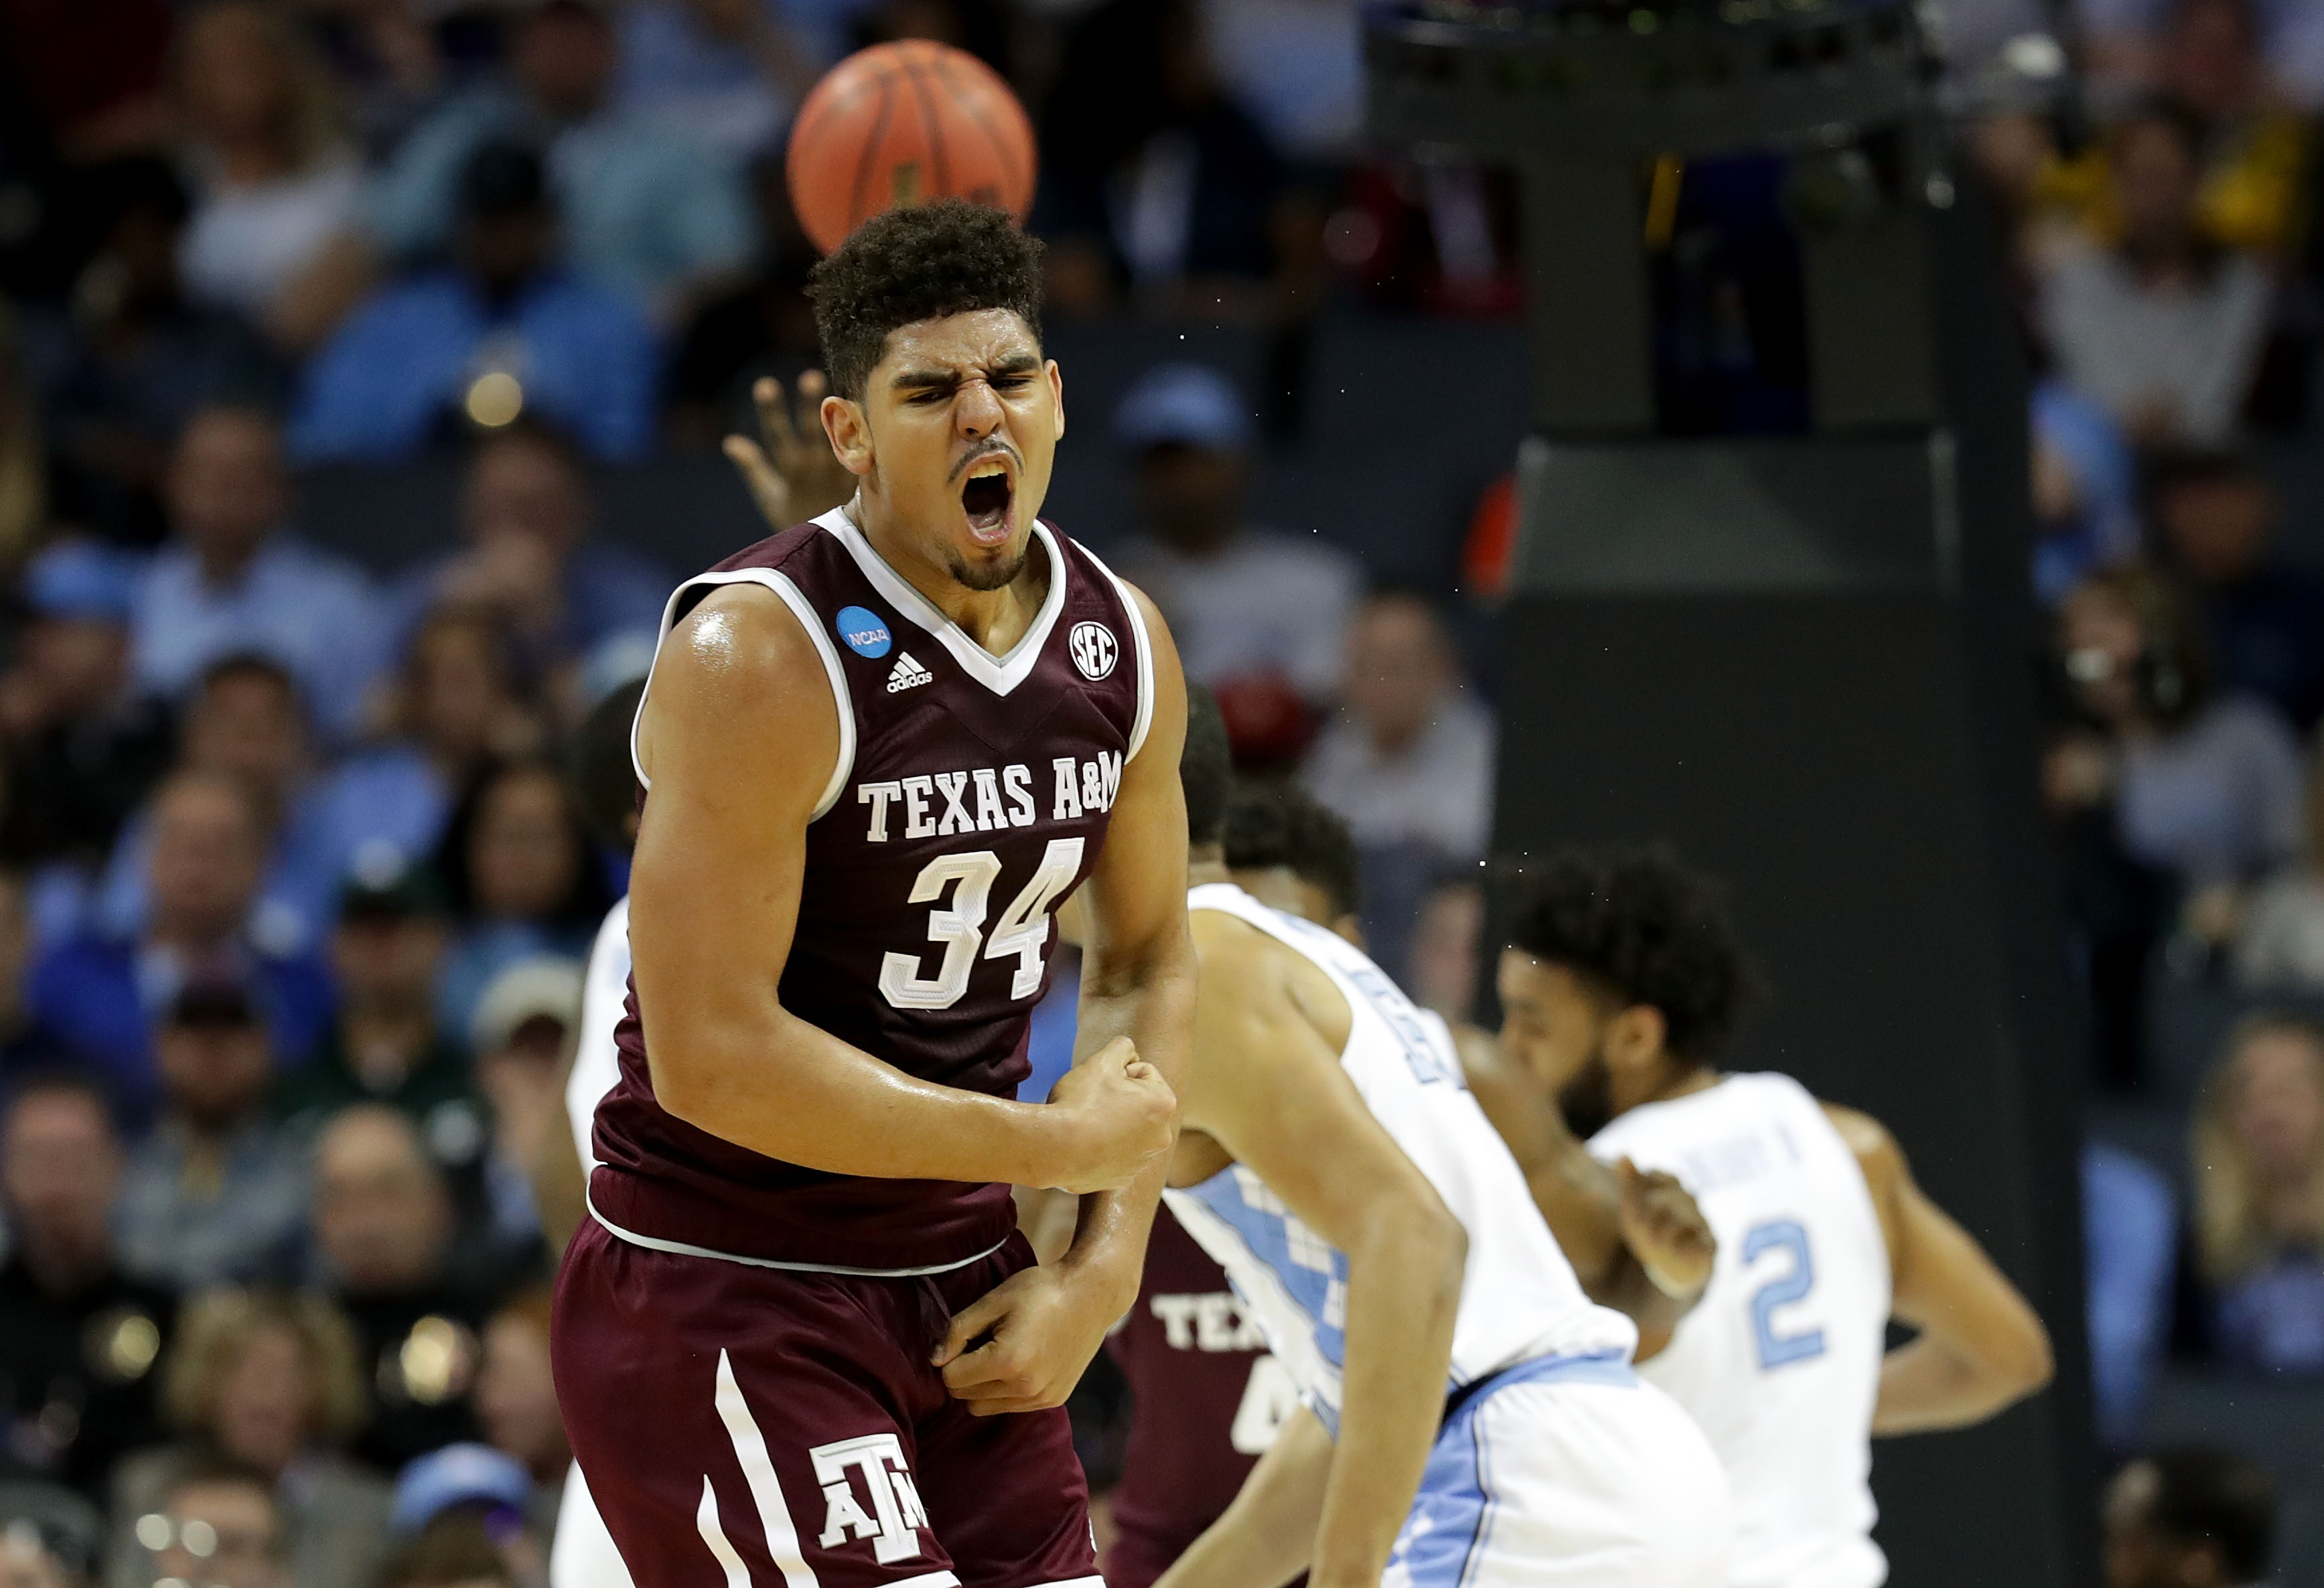 Texas A&M men face Michigan in Sweet 16